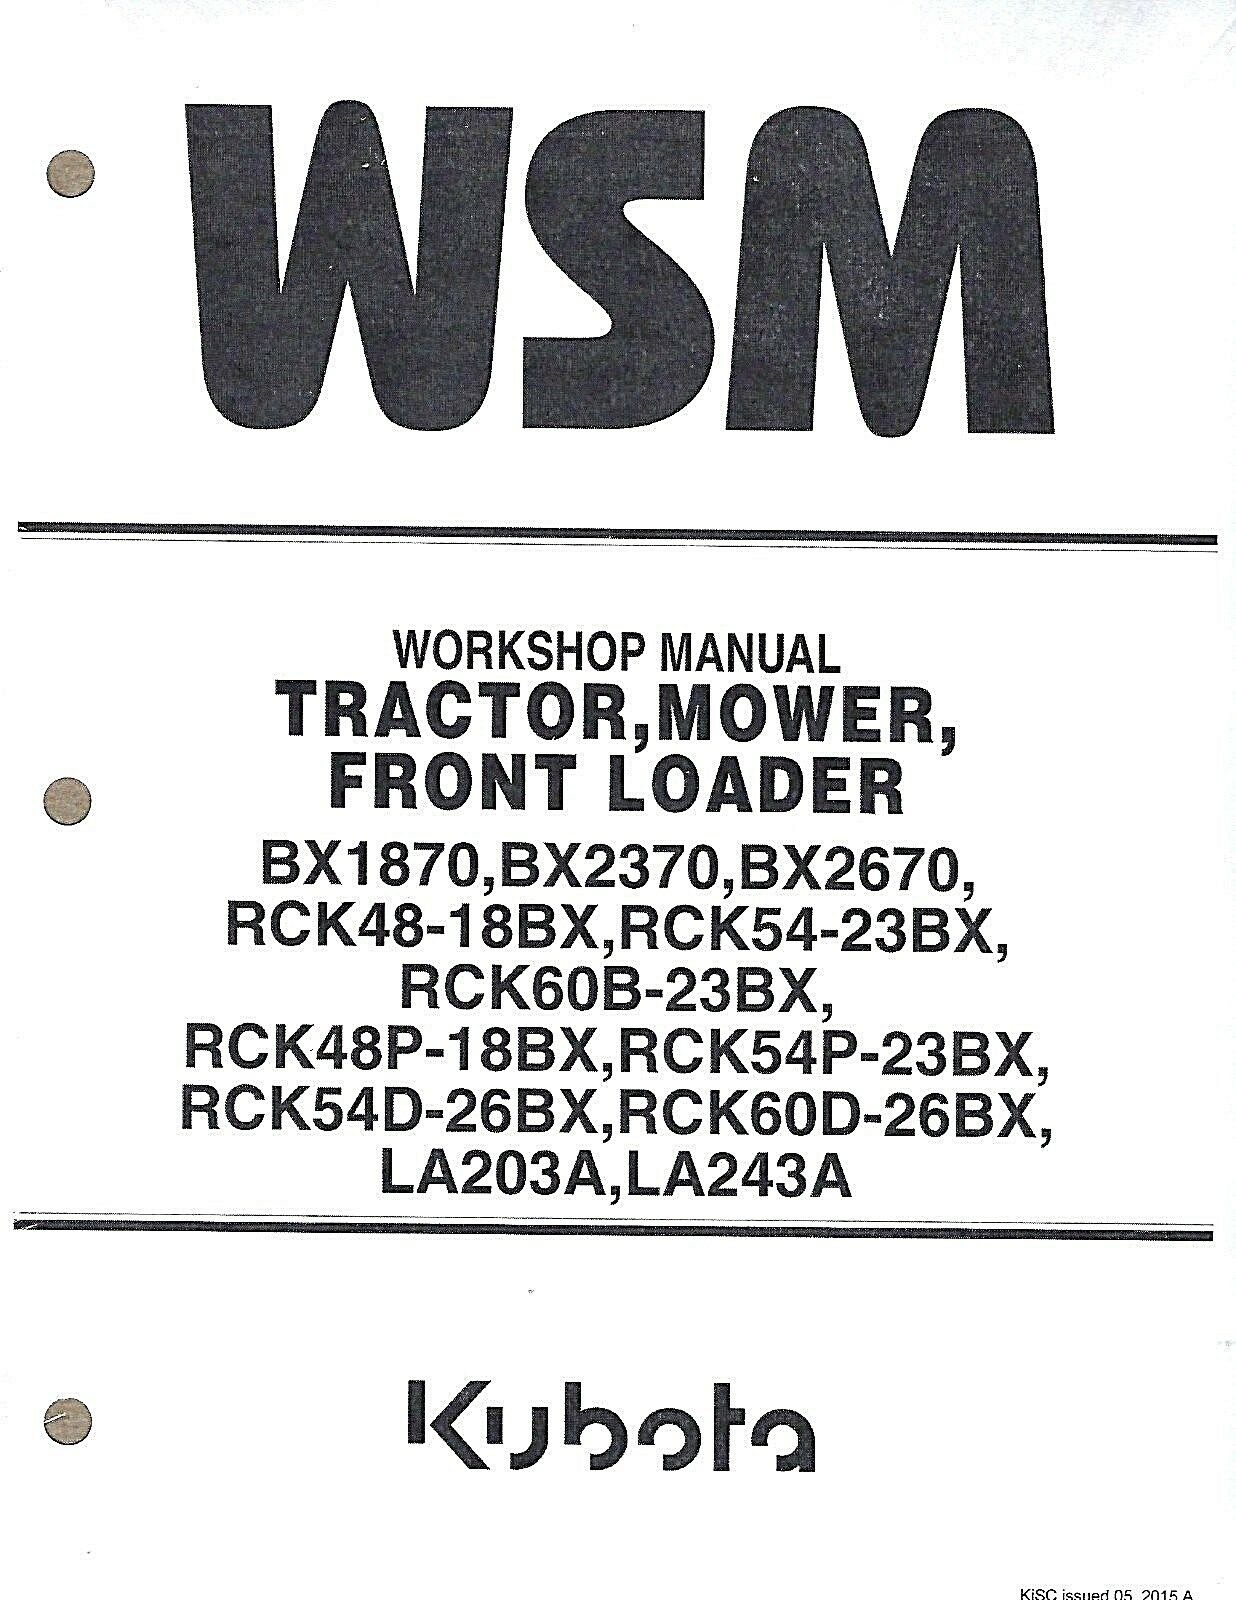 Kubota BX1870, BX2370, BX2670 Tractor, Loader, Rotary Mower Workshop Manual  1 of 1Only 1 available See More